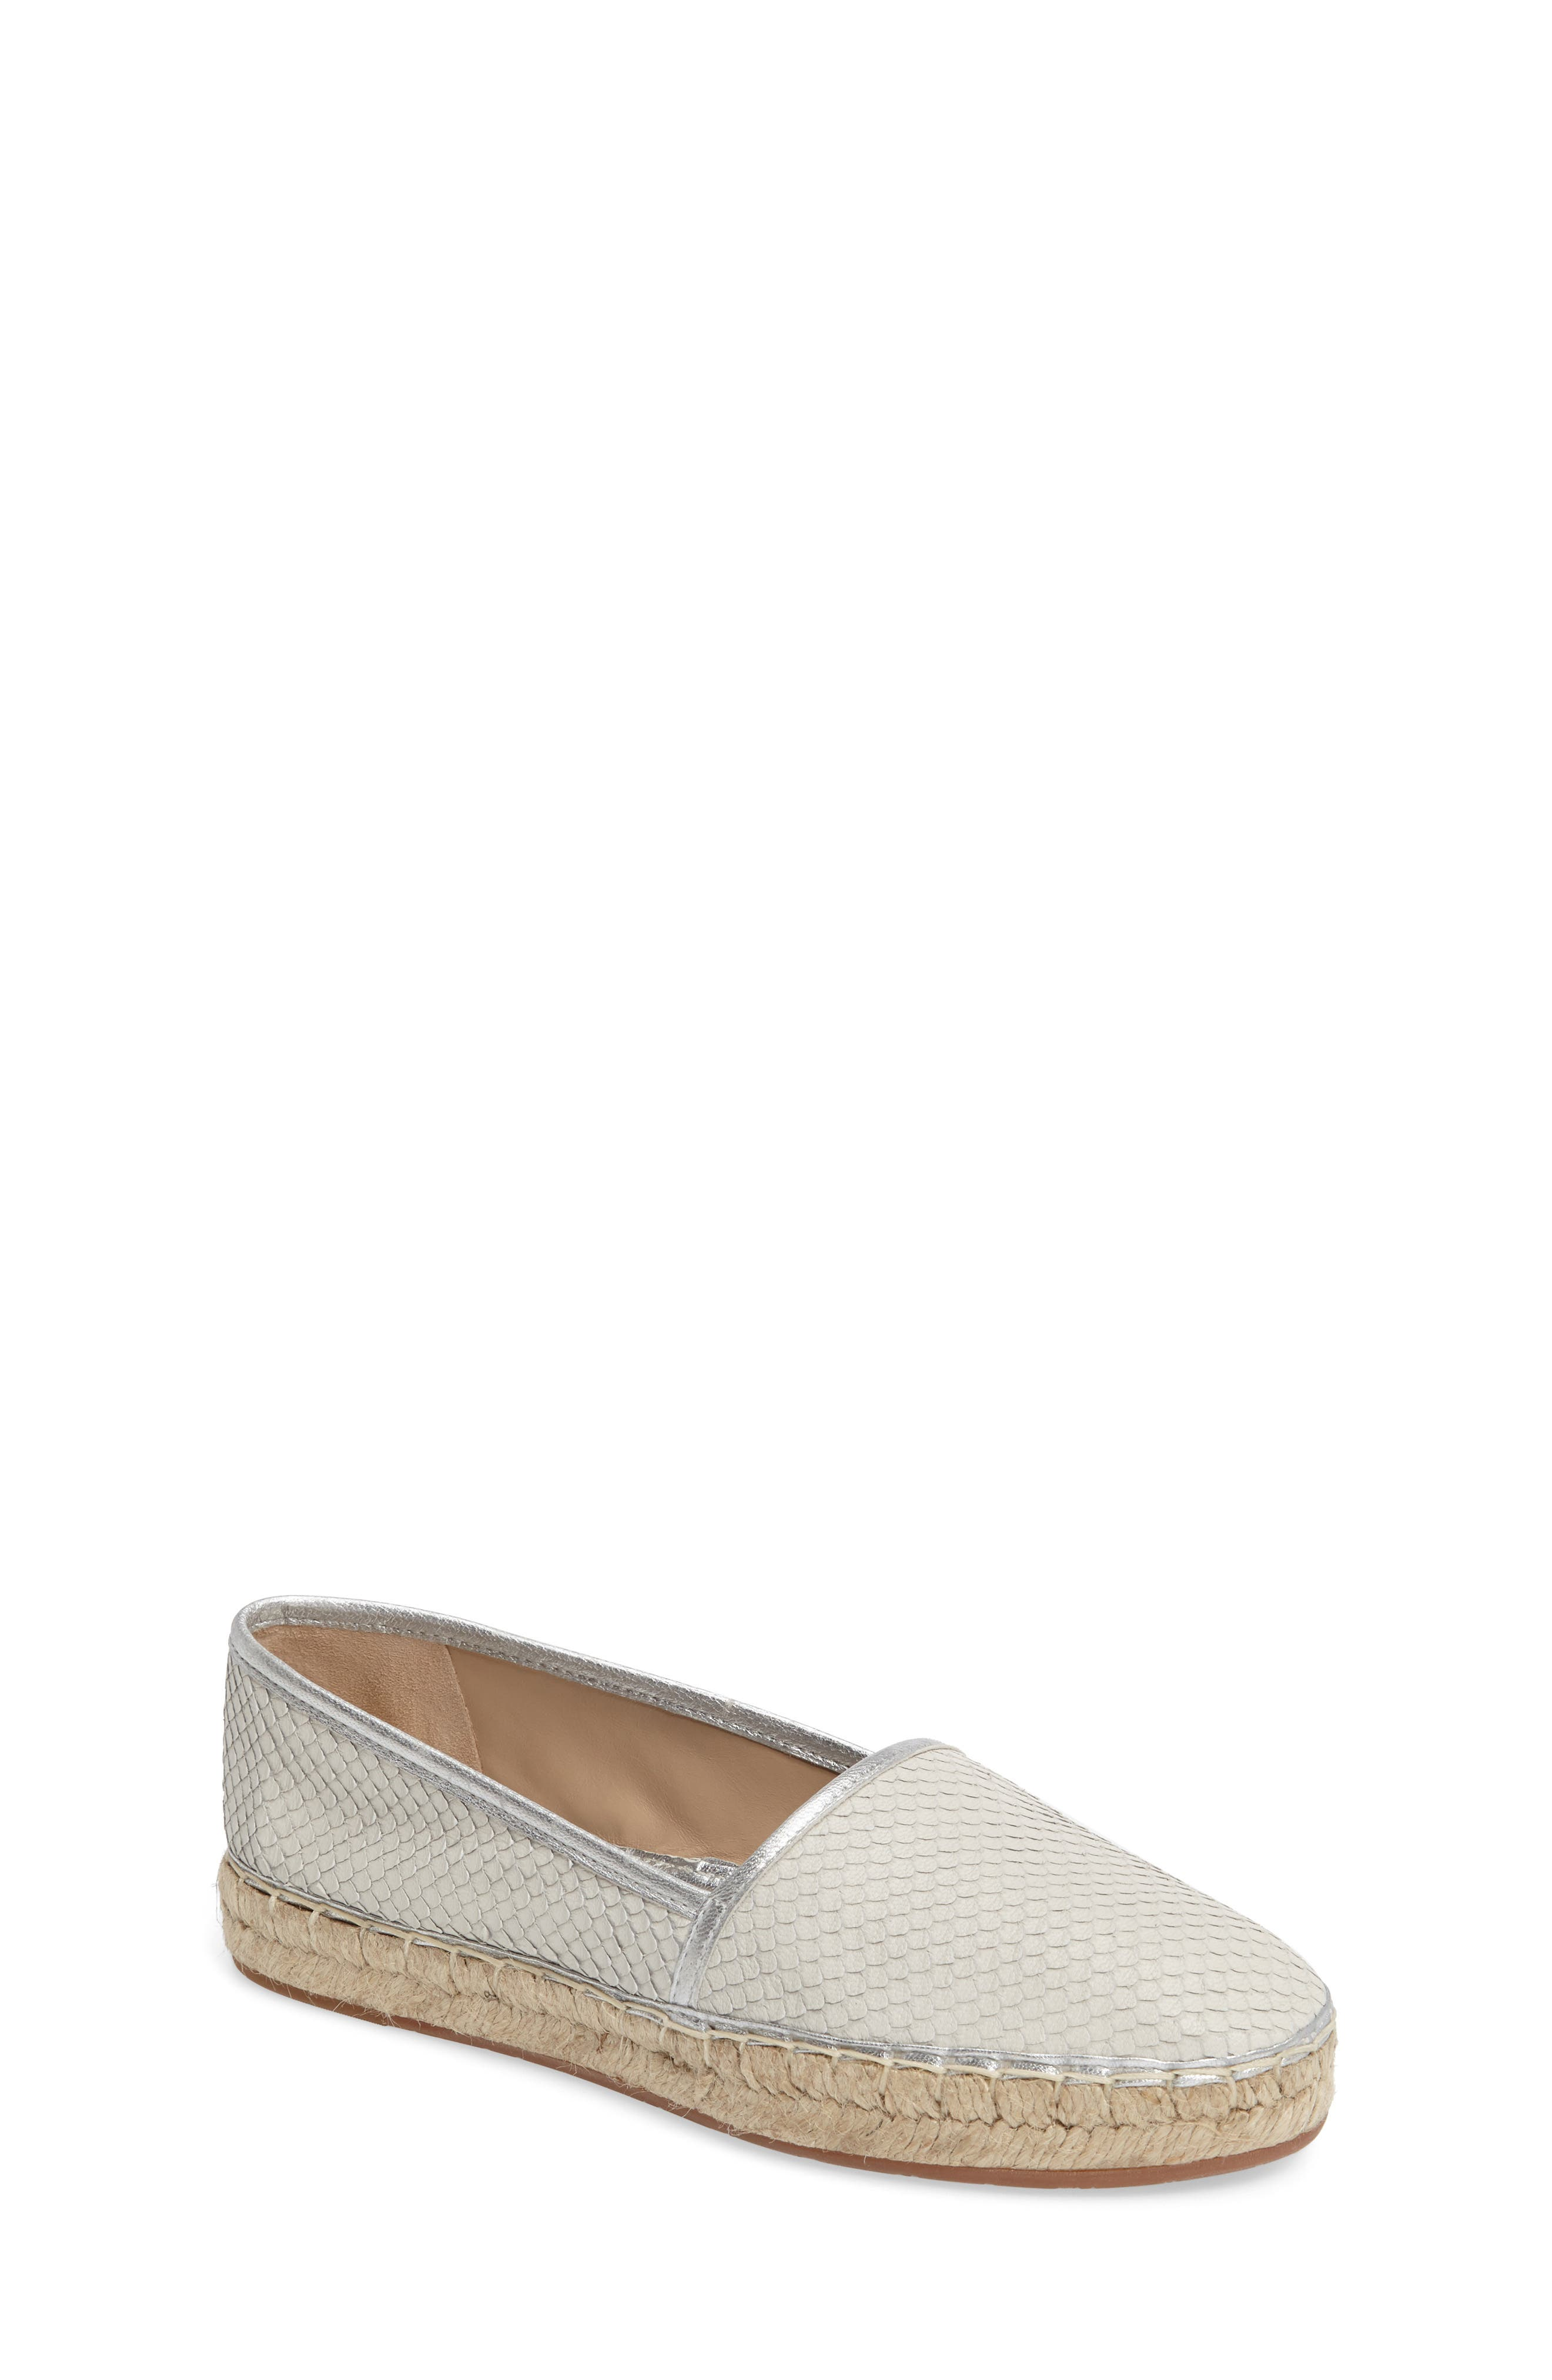 Johnston & Murphy Jaden Espadrille Flat (Women)